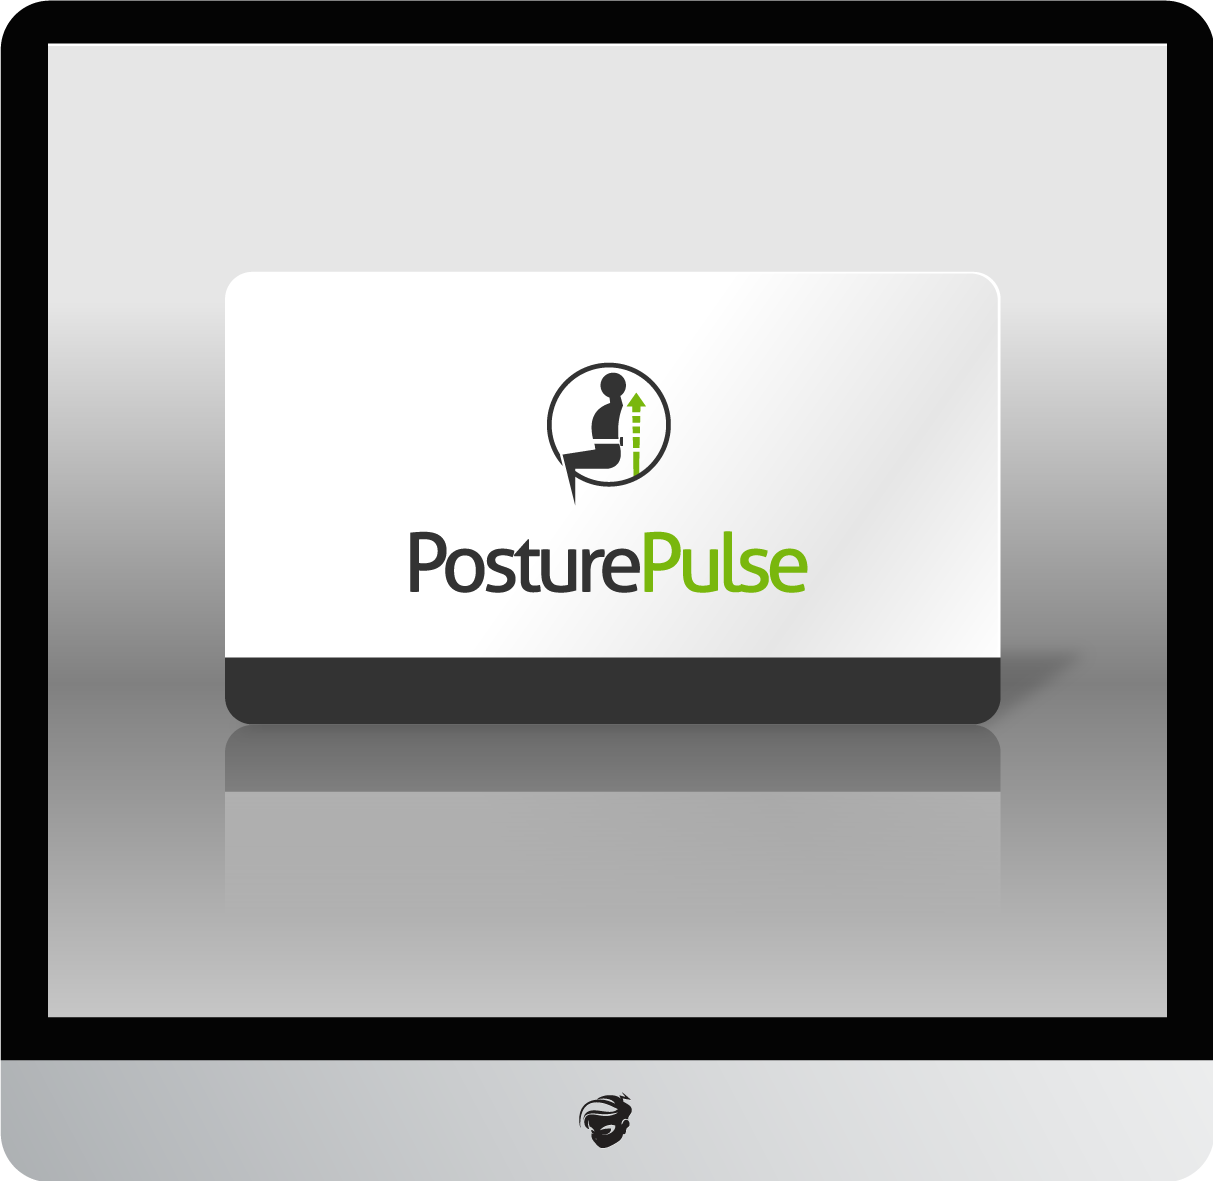 Logo Design by zesthar - Entry No. 108 in the Logo Design Contest Unique Logo Design Wanted for PosturePulse.